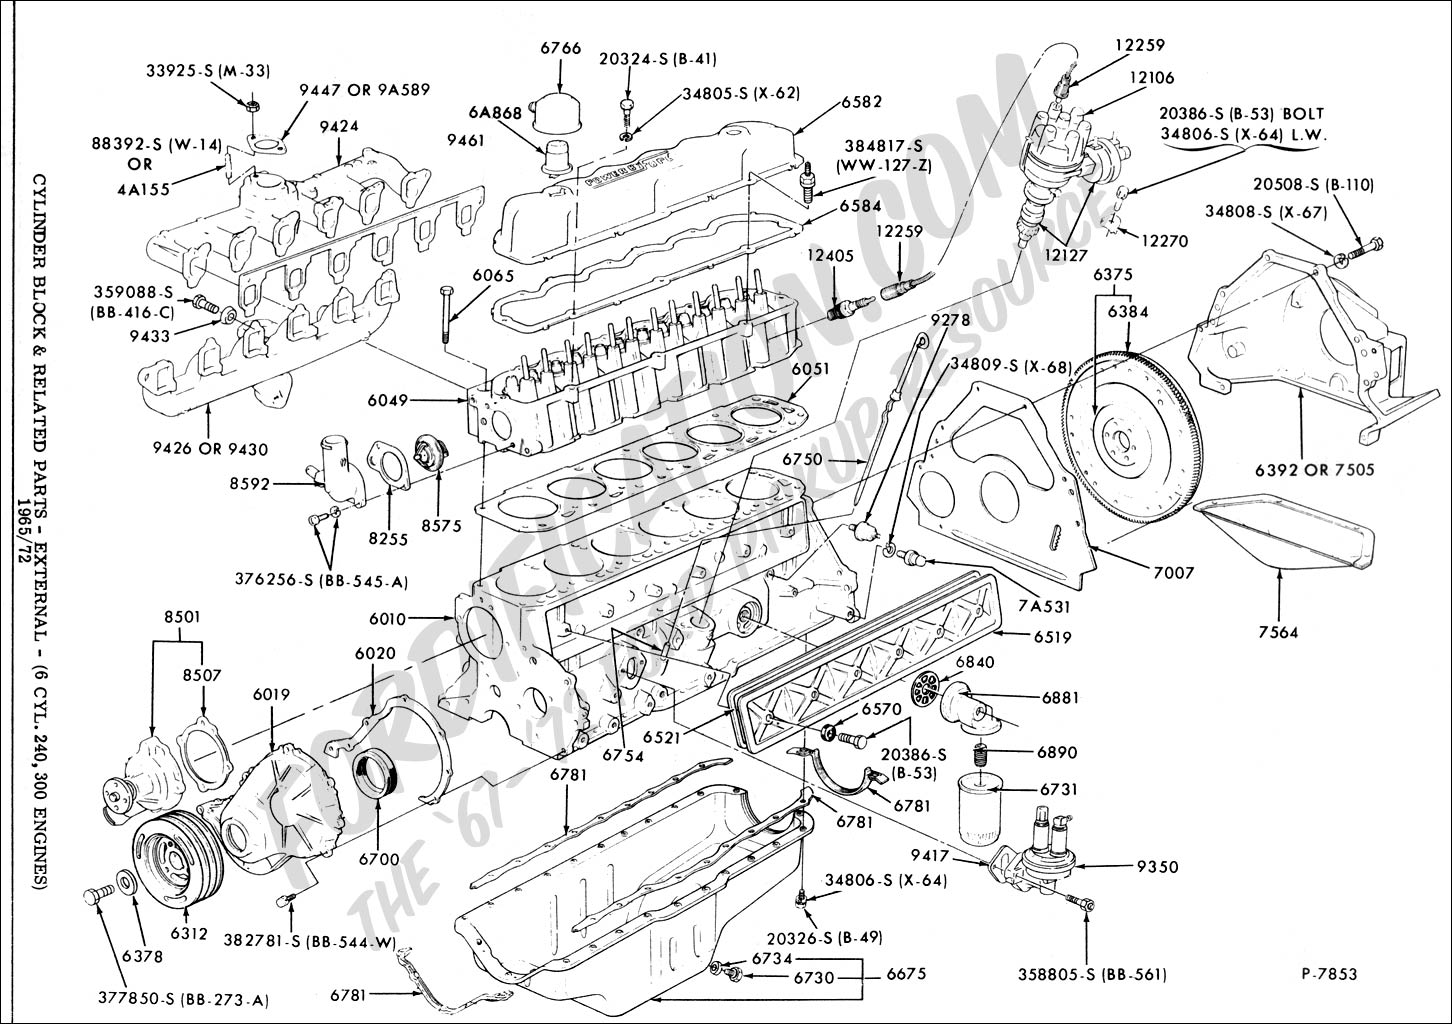 six cylinder engine diagram 13 10 sandybloom nl \u2022six cylinder engine diagram ztt kickernight de u2022 rh ztt kickernight de 1 cylinder engine diagram 6 cylinder engine diagram